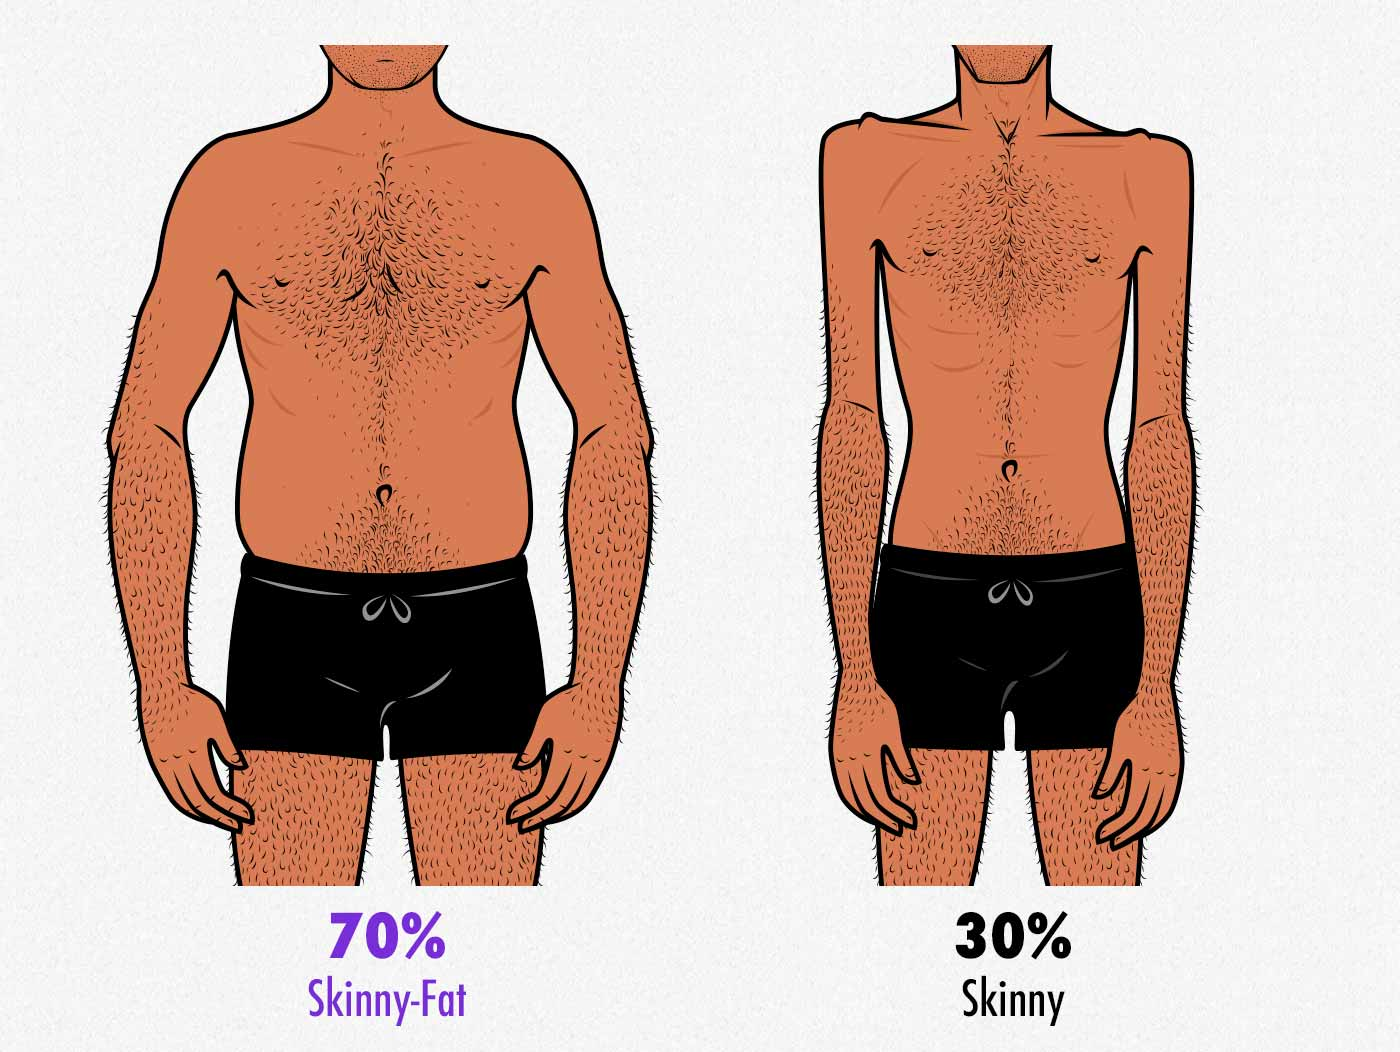 Survey results showing that skinny-fat men are rated as more attractive than skinny men by gay guys.